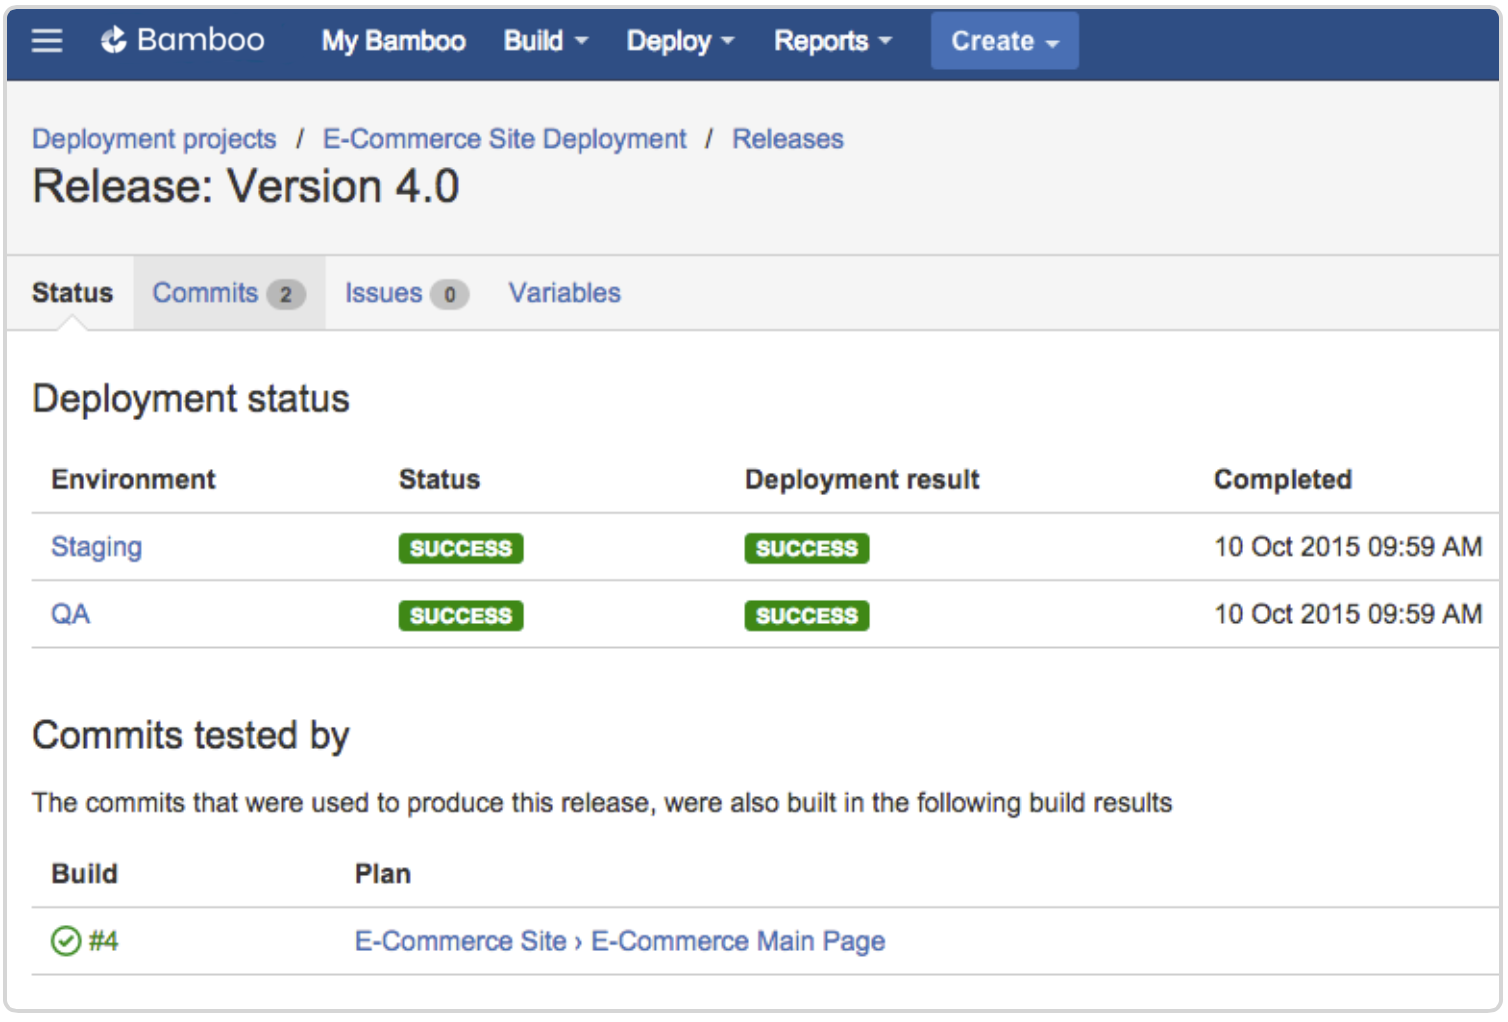 Bamboo deployment release 4.0 screenshot